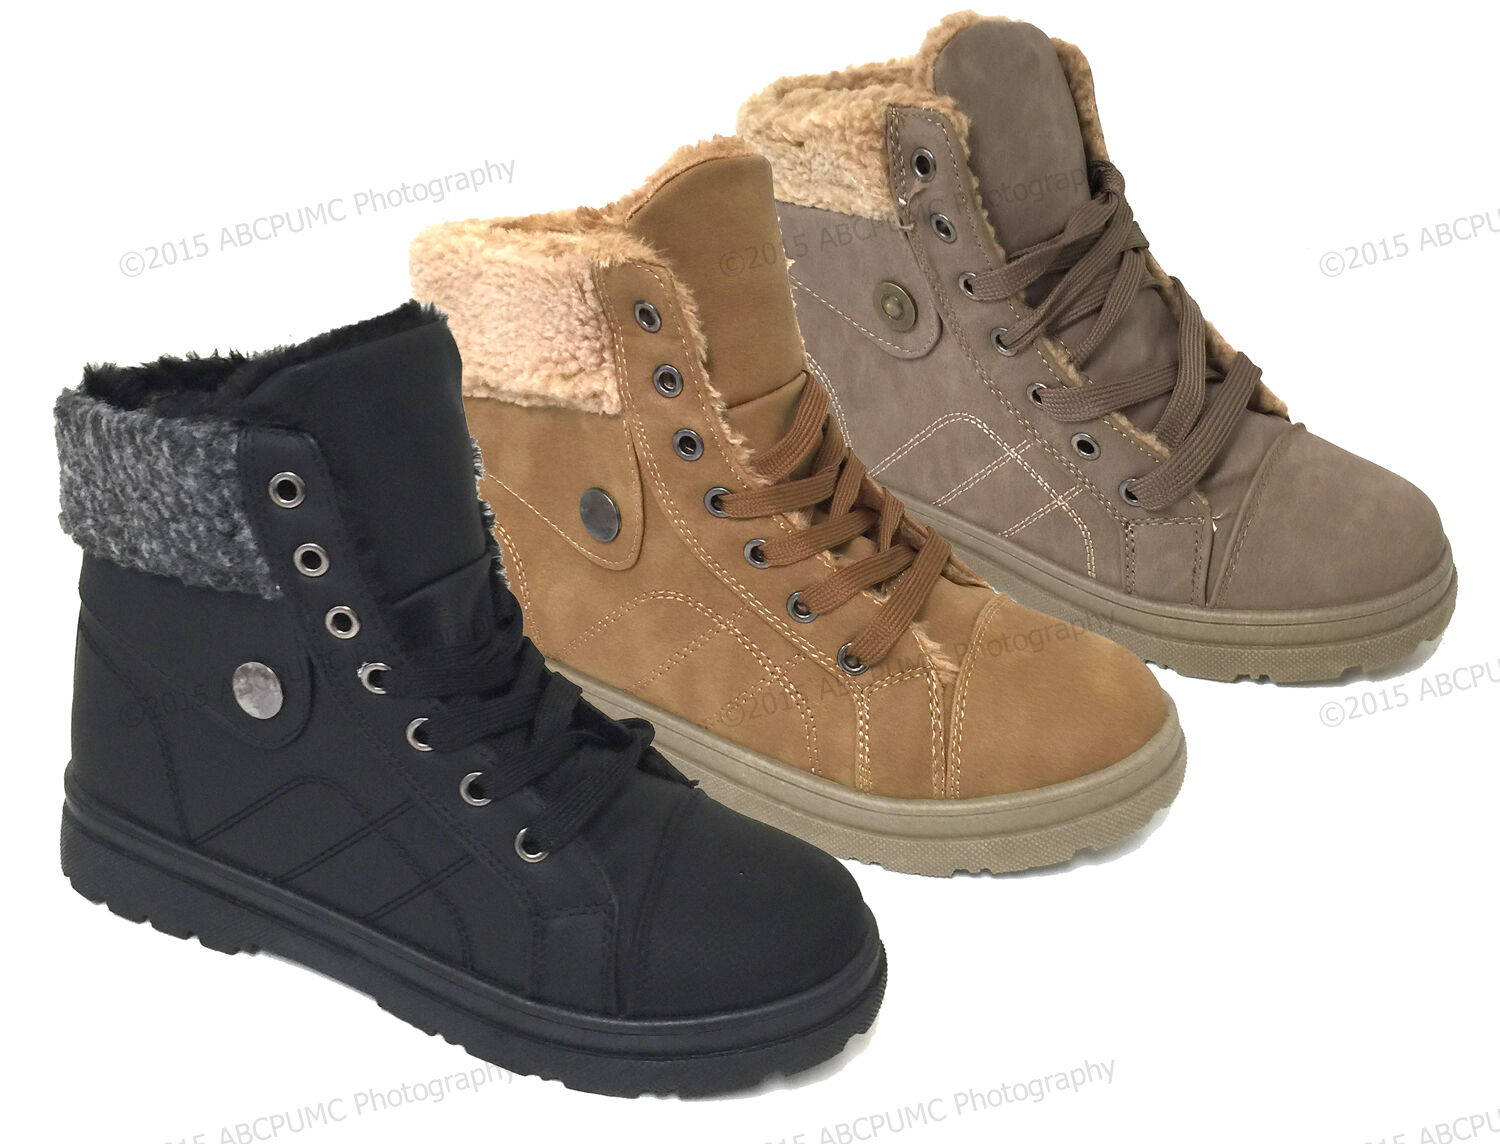 Boots - Women's Sneaker Boots Winter High Top Lace up Fur Combat Warm Snow Shoes Sizes